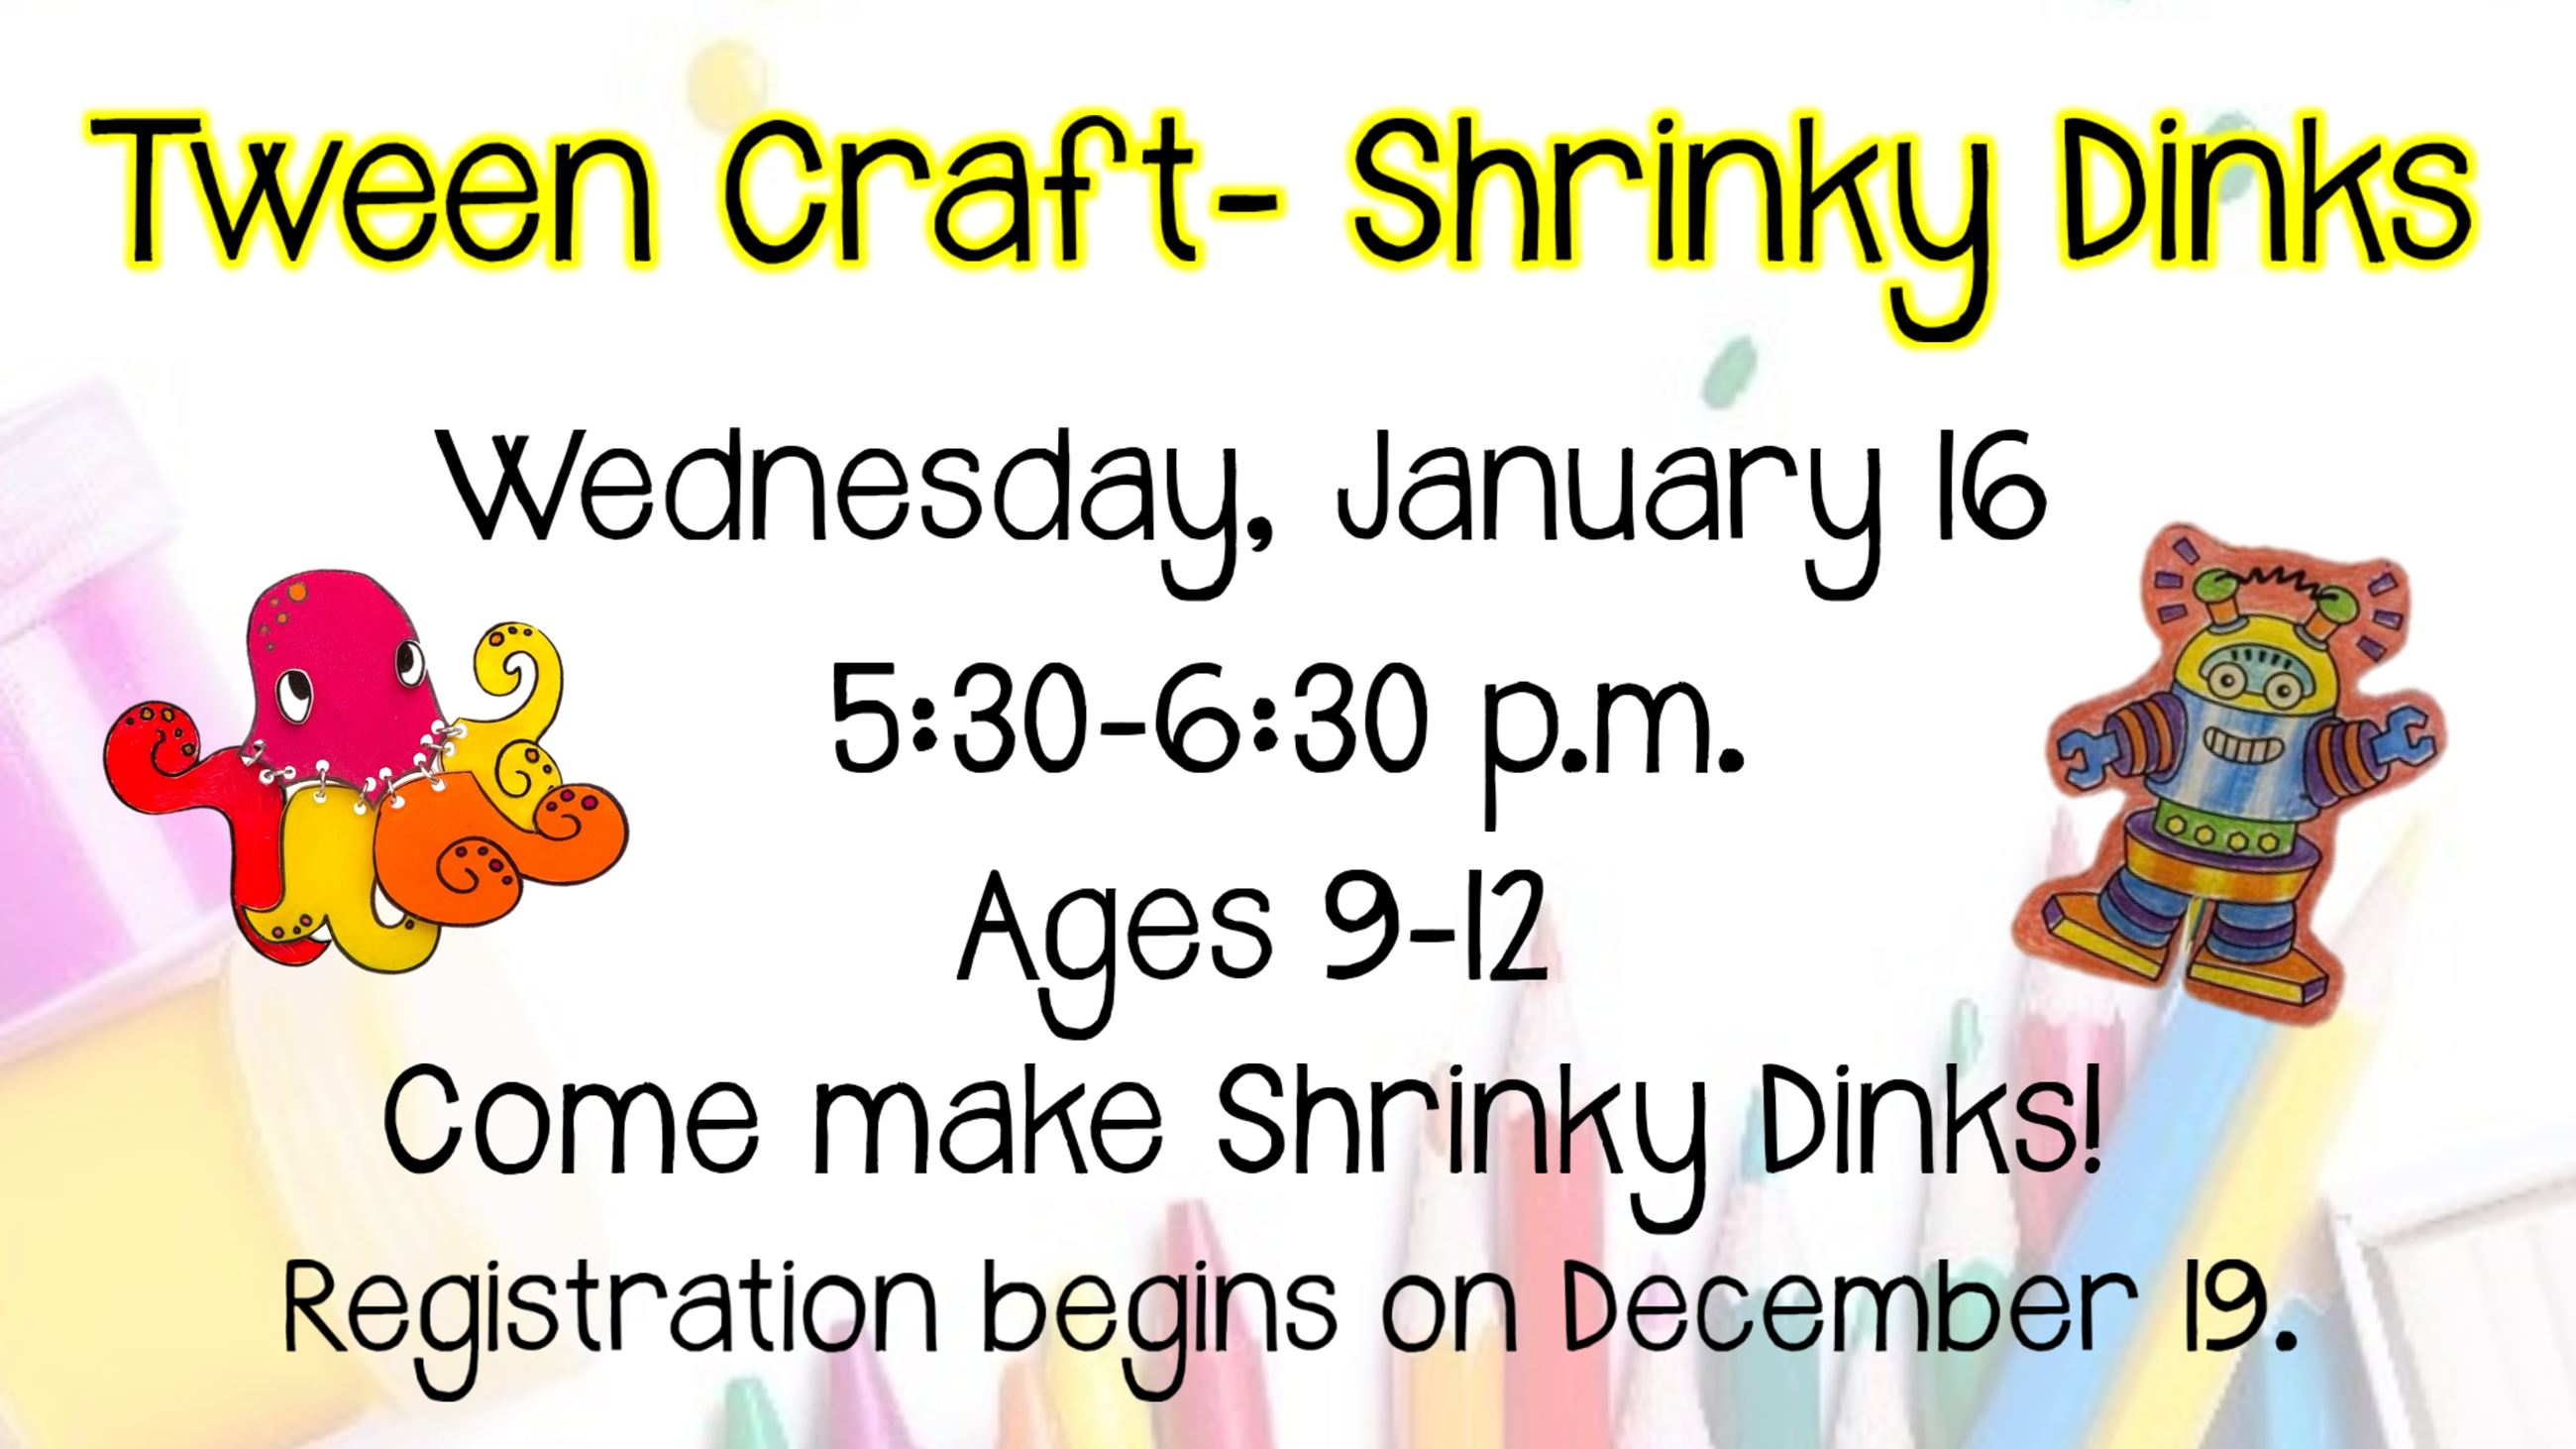 Tween Craft Shrinky Dinks. January 16. 5:30 to 6:30 p.m. Ages 9 to 12. Registration begins December